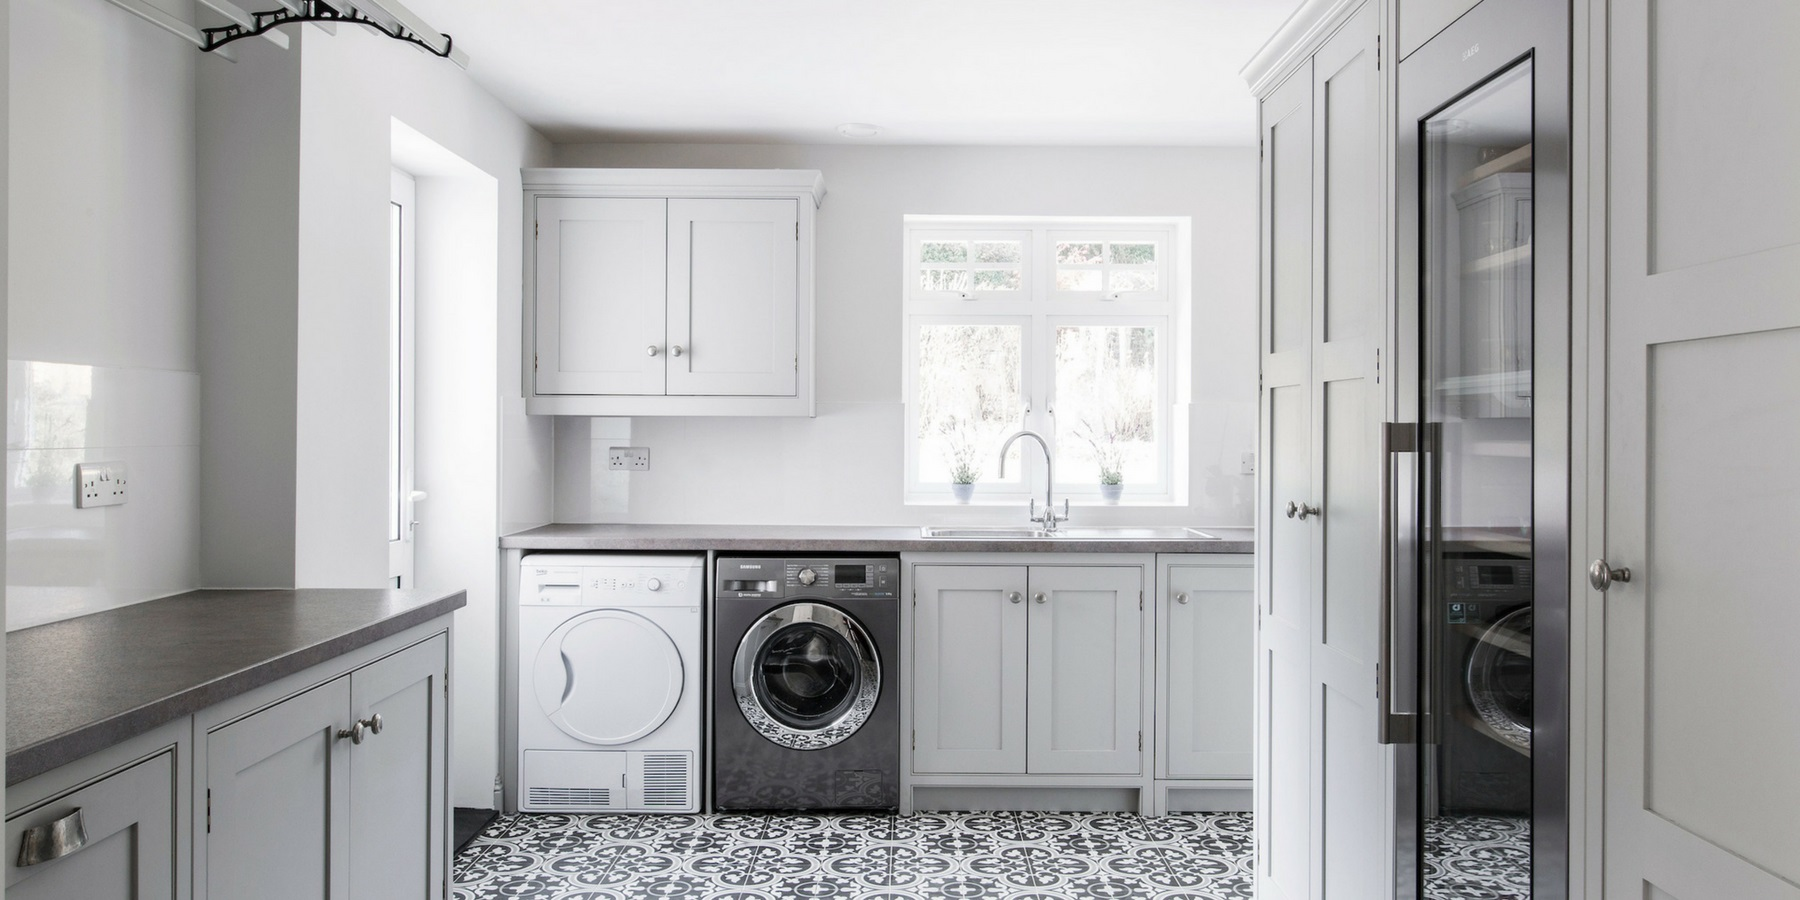 Burlanes Interiors - Fresh Design Ideas for Utility Rooms